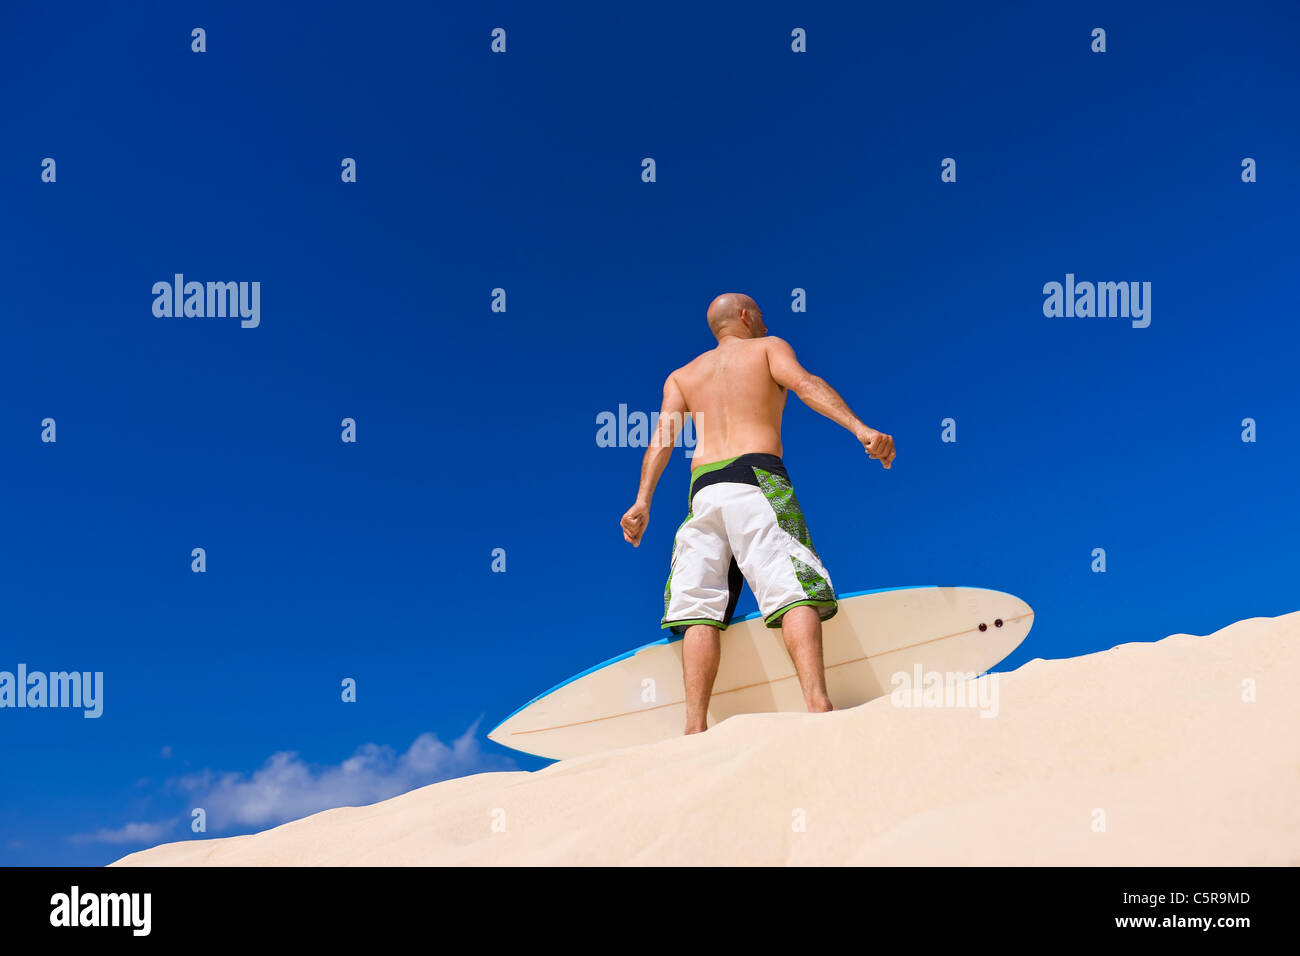 Surfer with board looks out over beach. - Stock Image